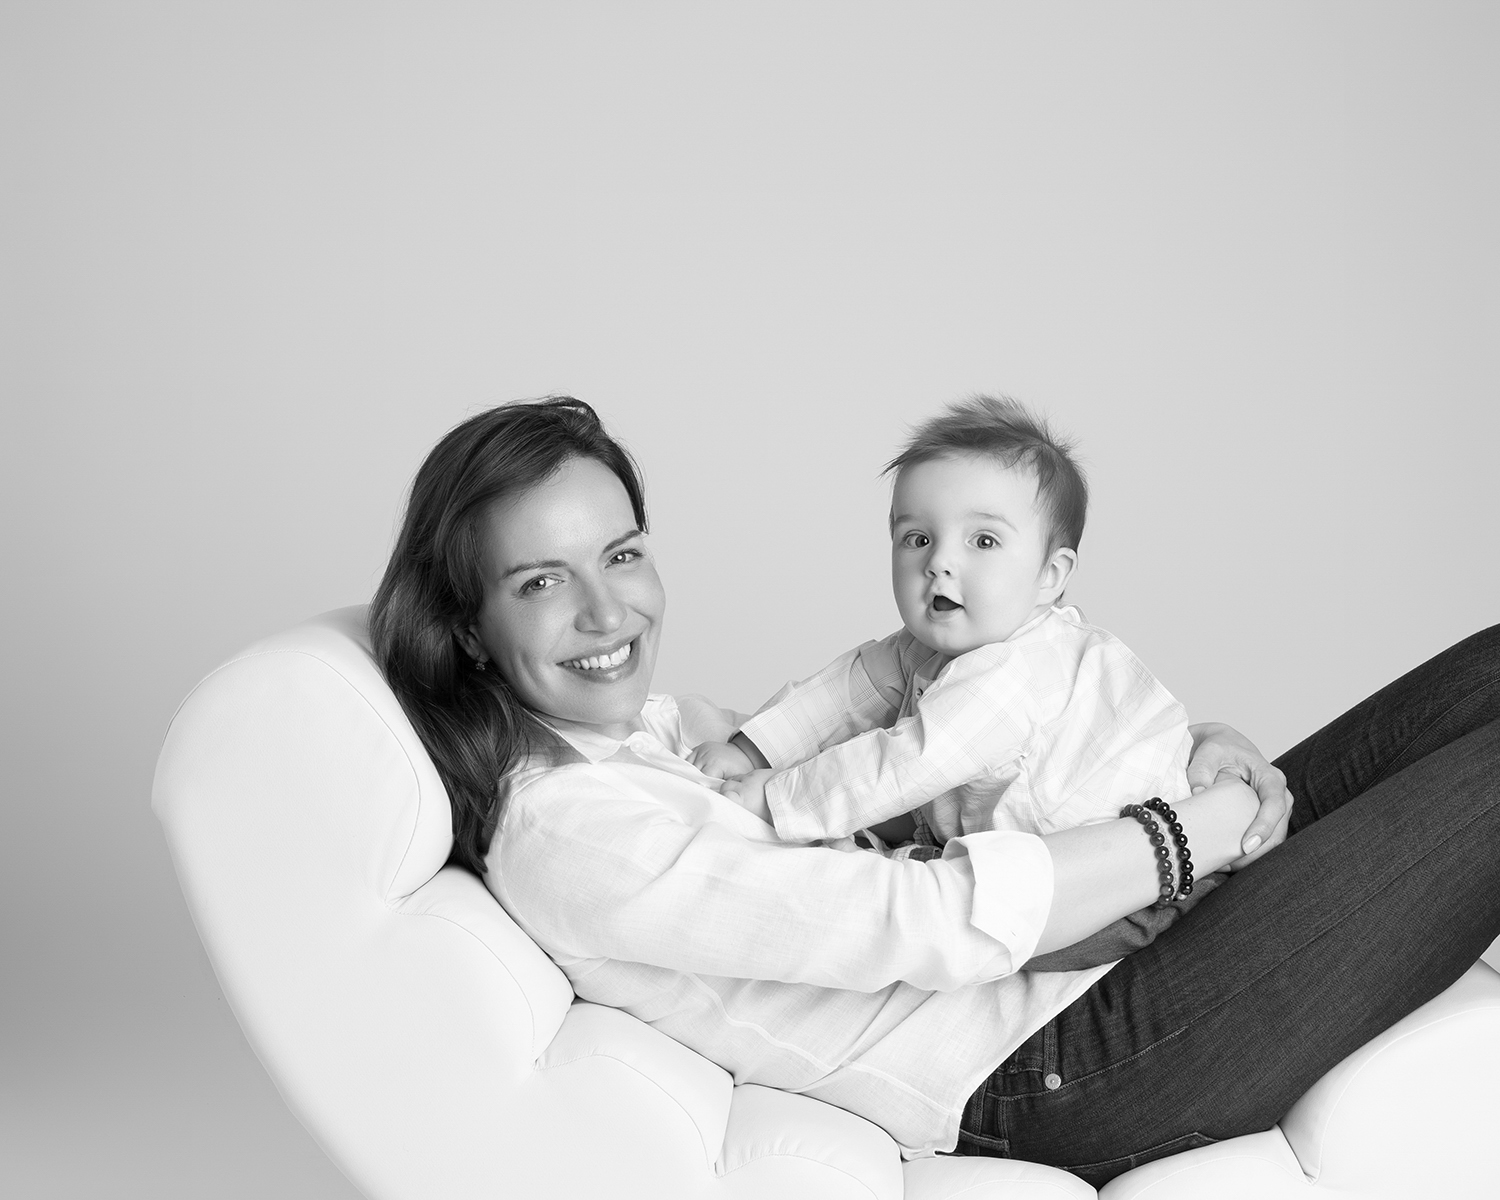 Black and white photograph of a new mum holding her baby on her lap. She is sitting on a long white reclining chair.